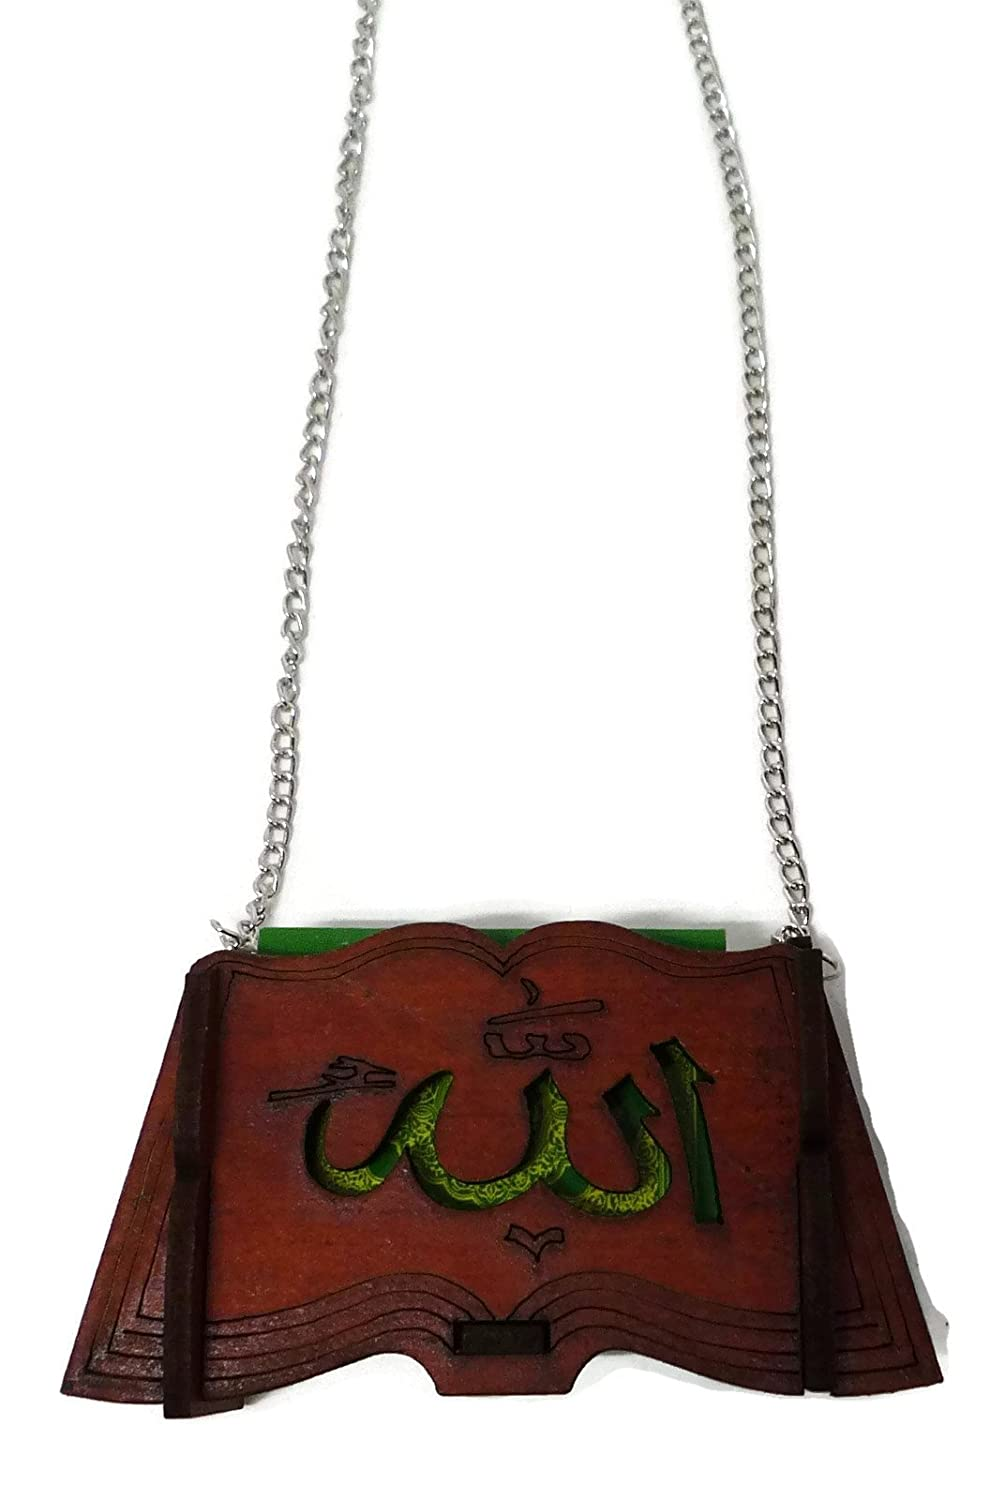 Amazon.com: Muslim Car Hanging Decoration Islamic Mini Al-Quran w/ Engraved Allah Arabic Word on Wooden Small Box Car Ornament: Office Products